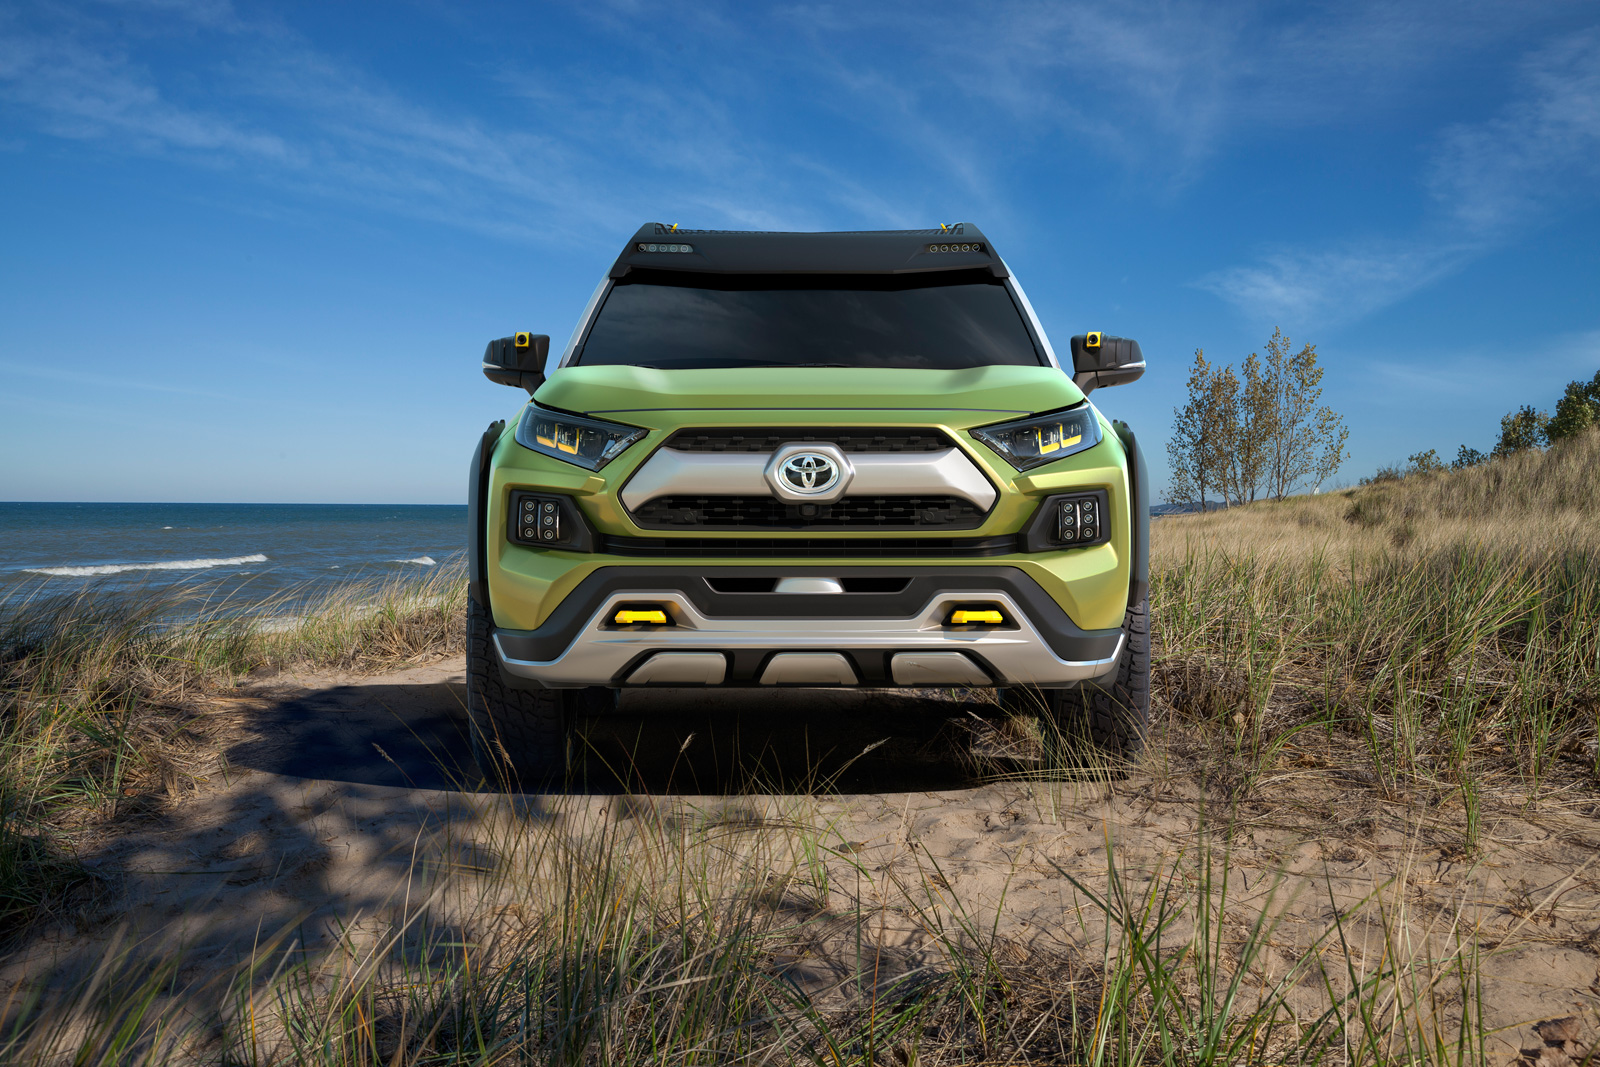 2018 Toyota FT-4X: Is It FJ Cruiser's Succesor Or Not >> Toyota Might Build A True Fj Cruiser Successor After All